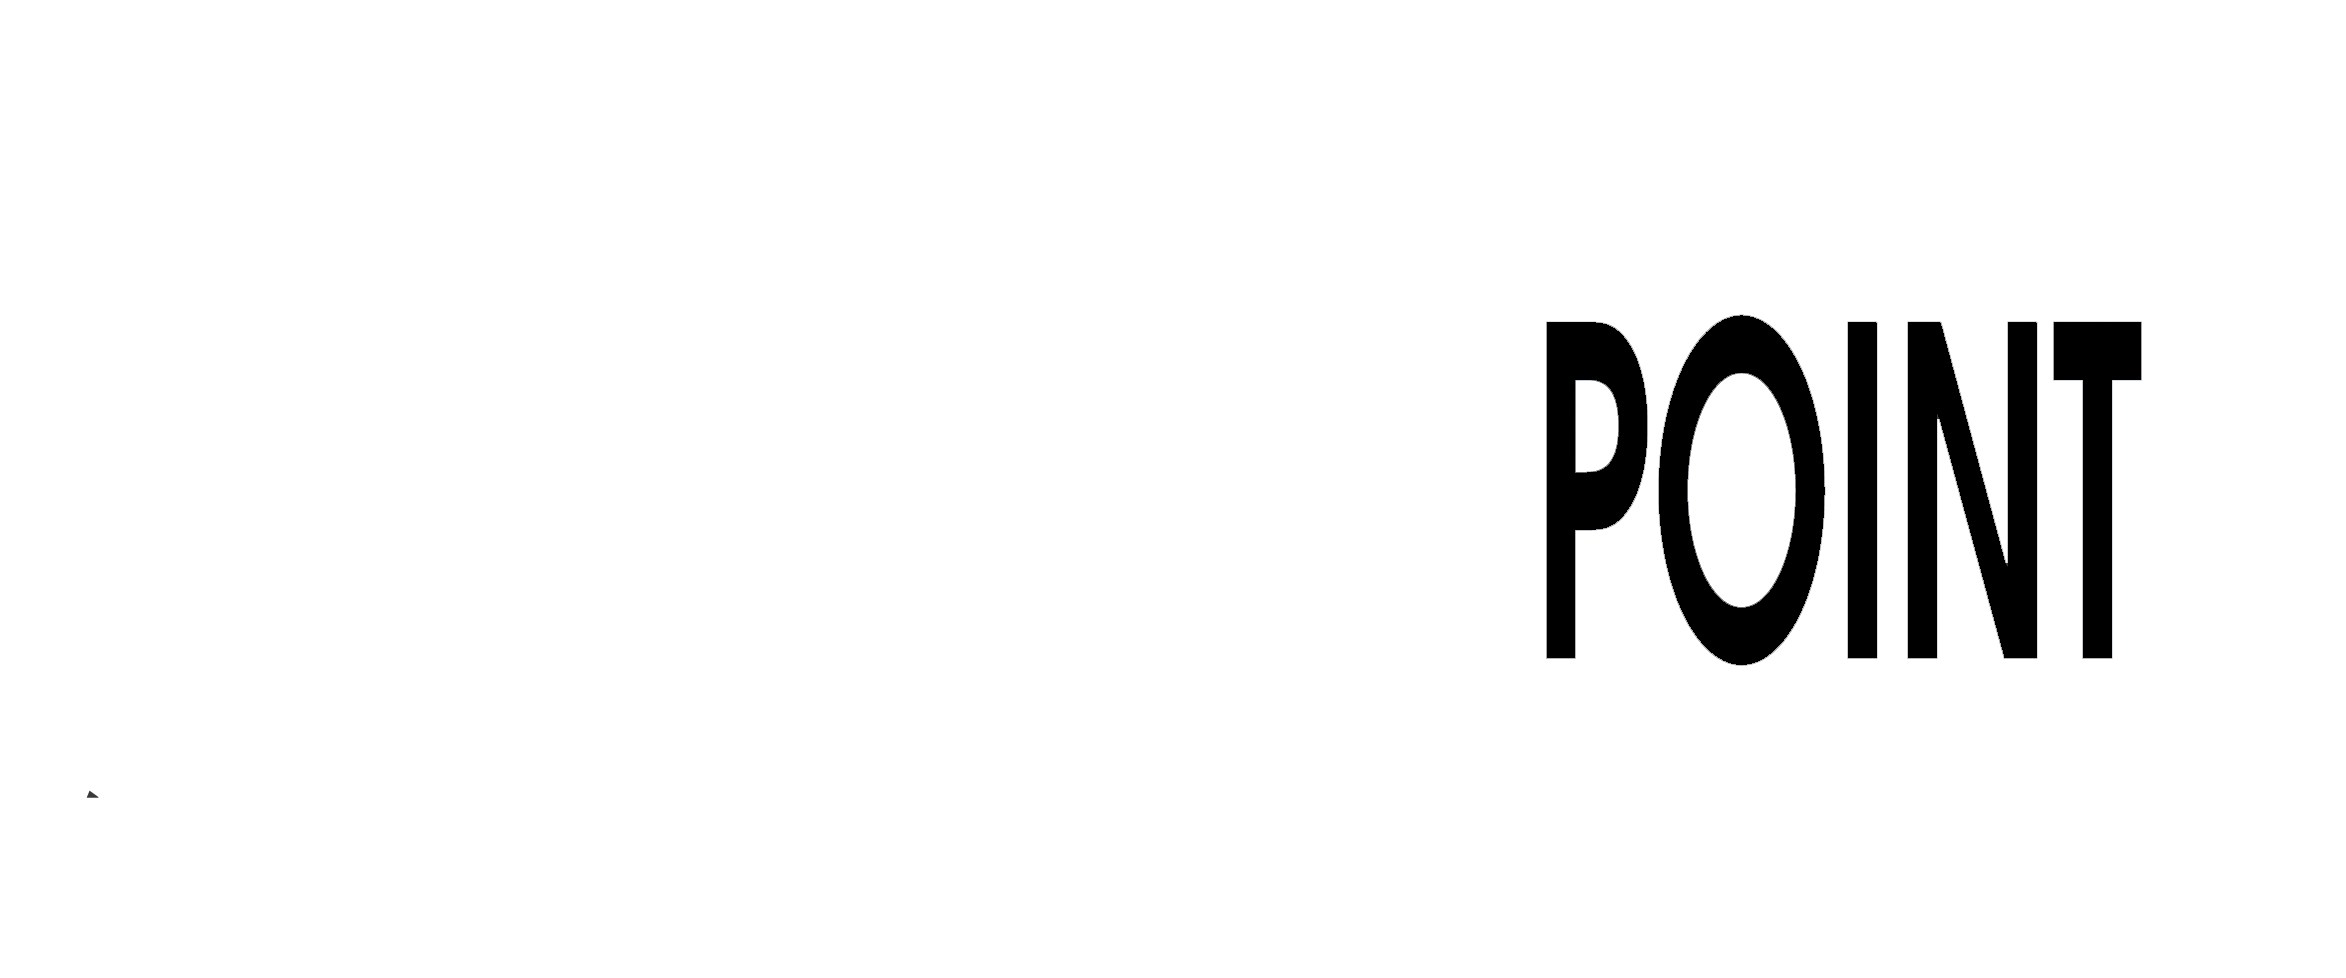 Southwinds Point